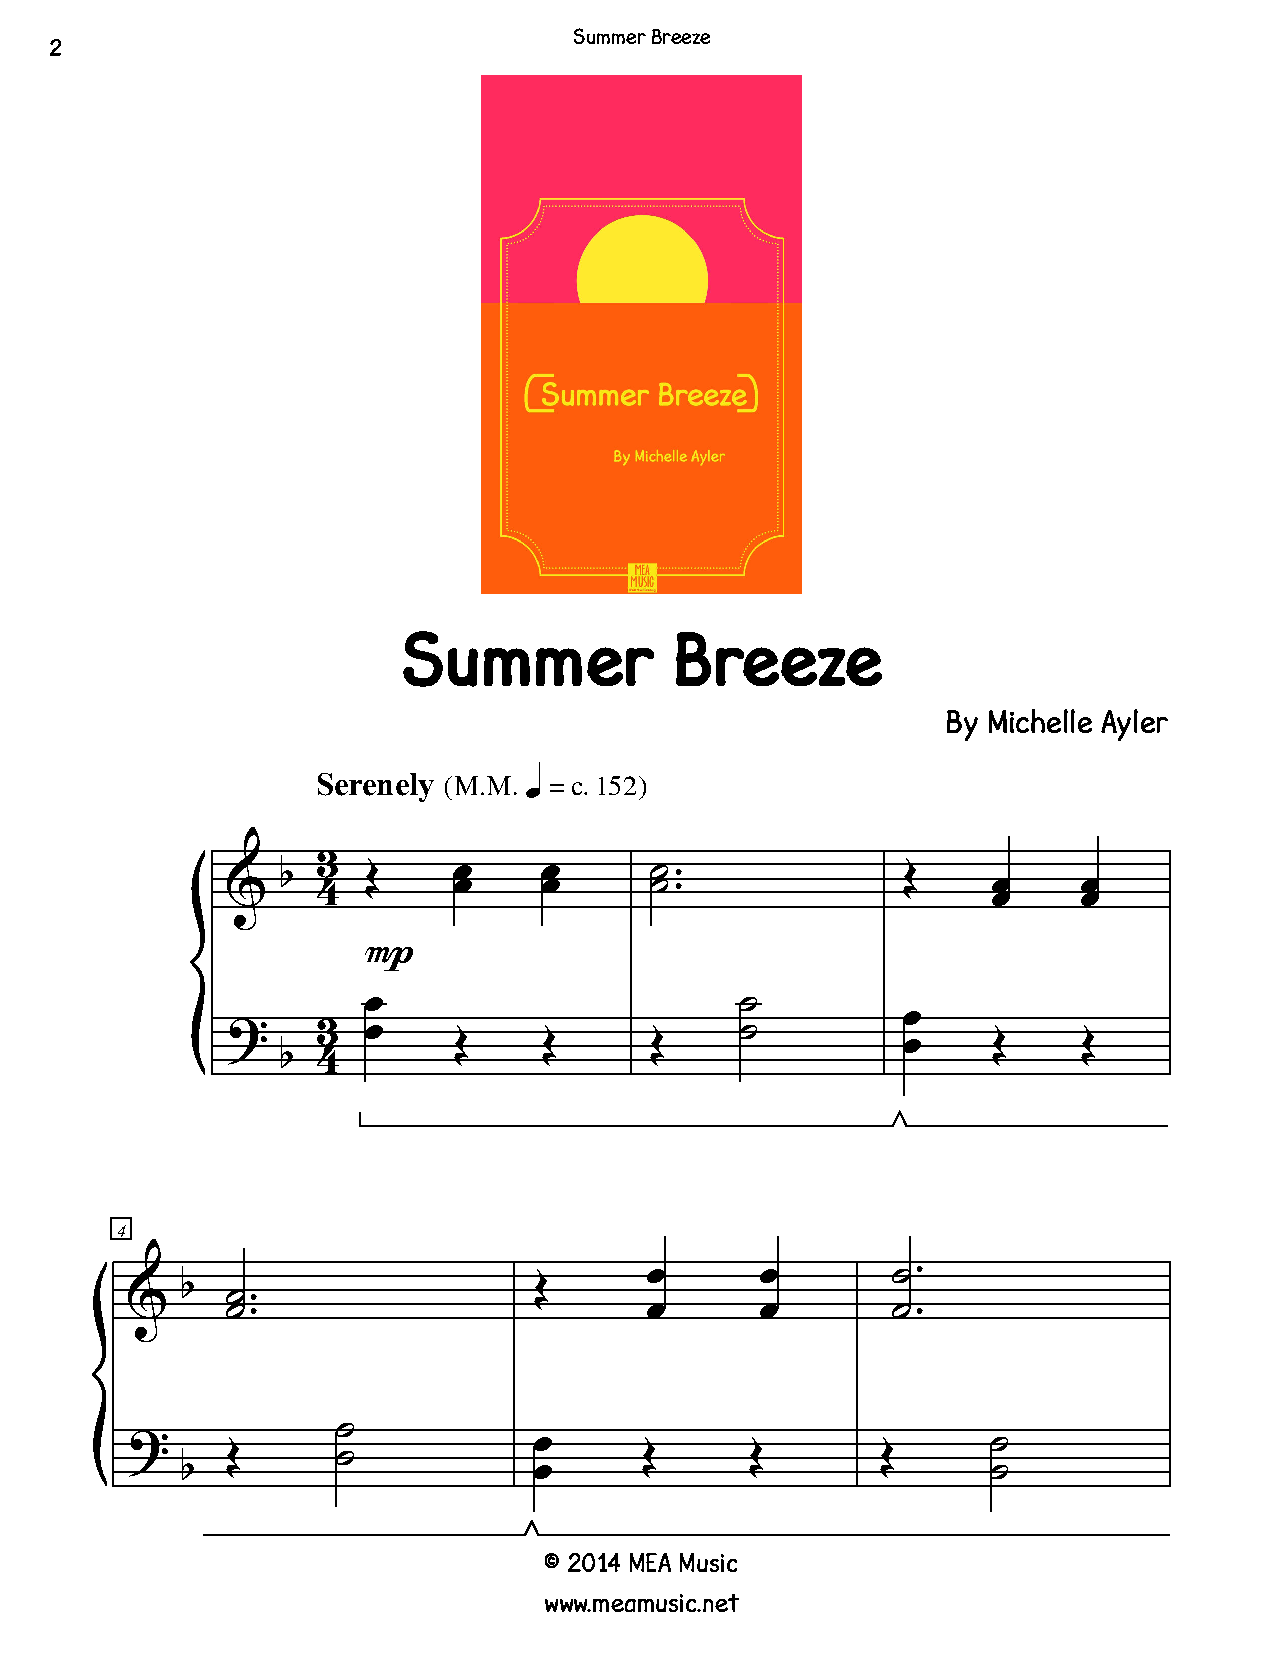 Summer Breeze Piano Sheet Music Solo First Page Sample Of A